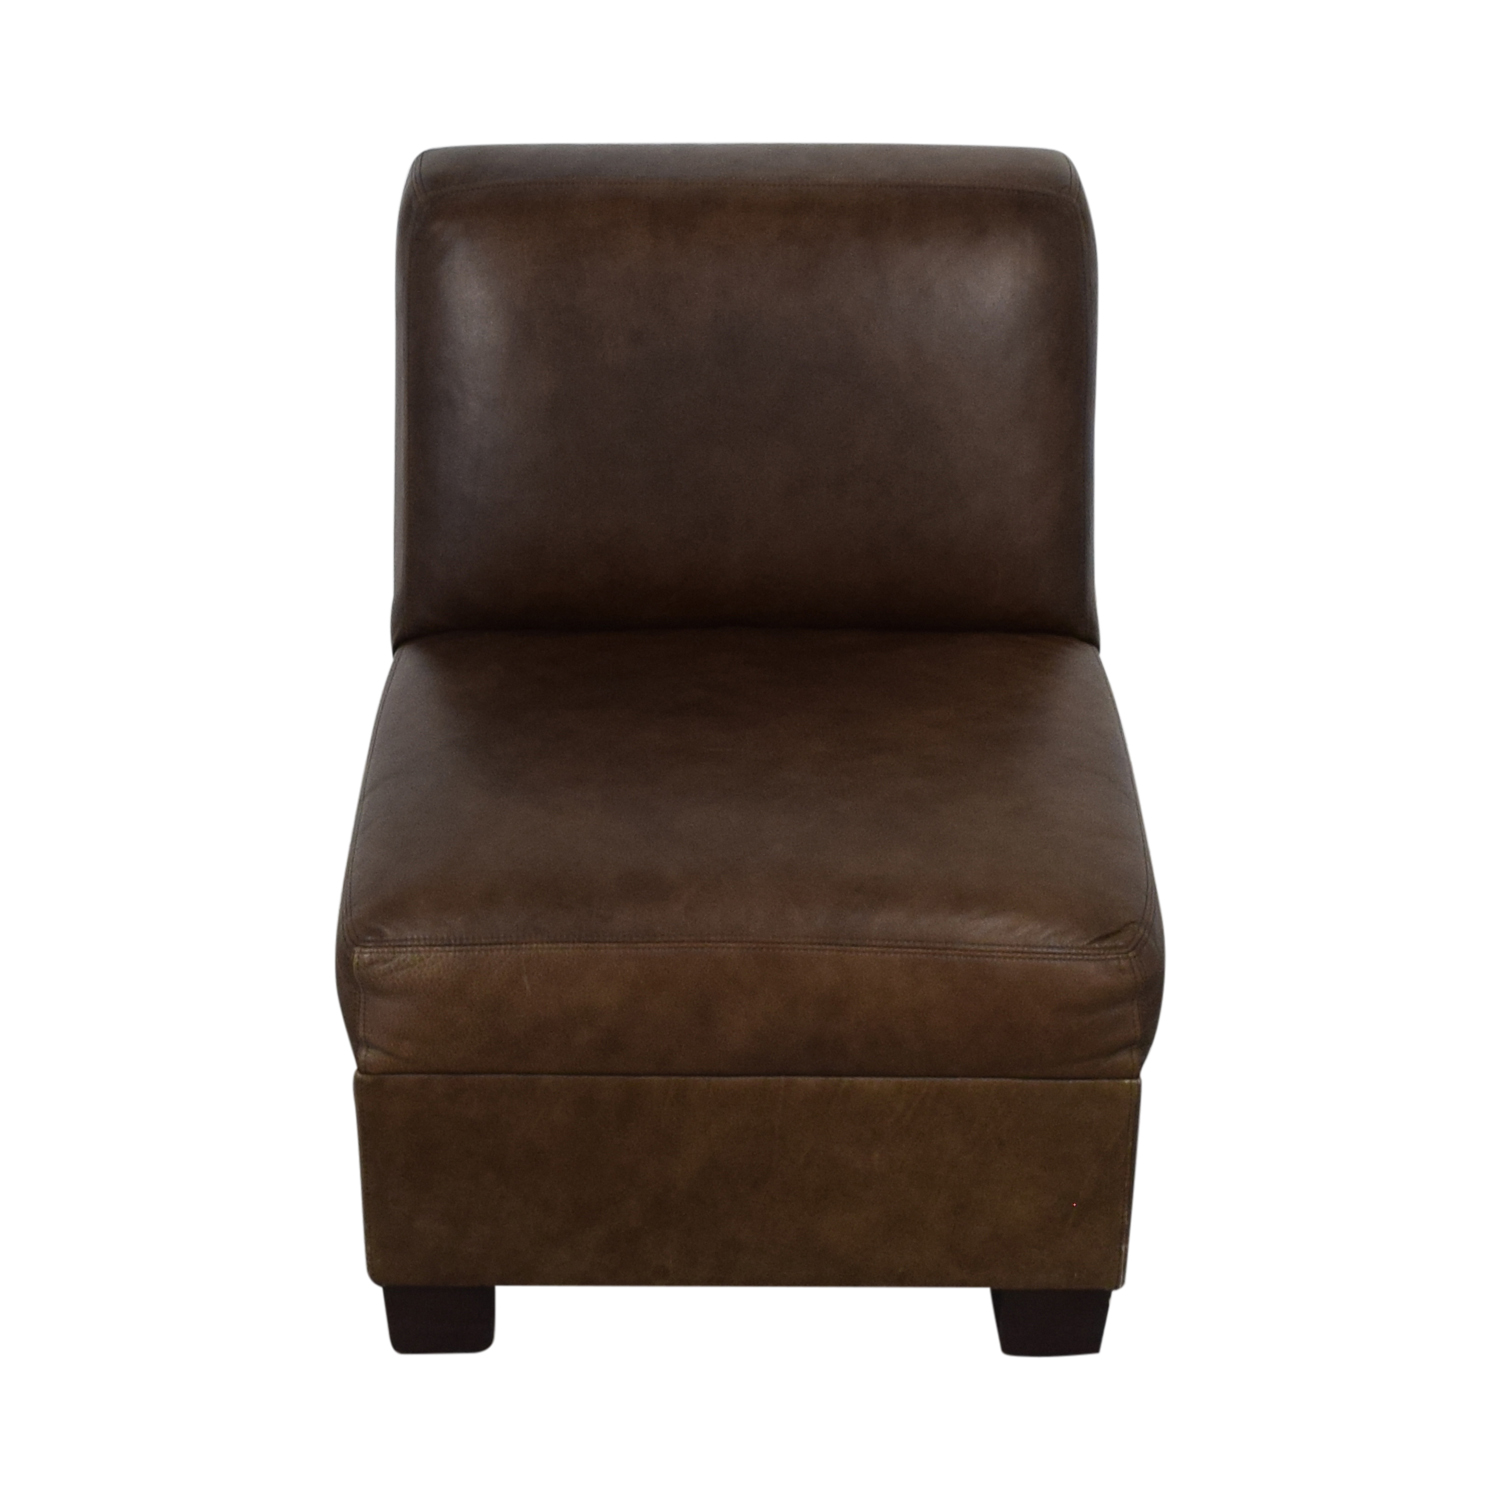 Pottery Barn Pottery Barn Leather Lounge Chair nyc